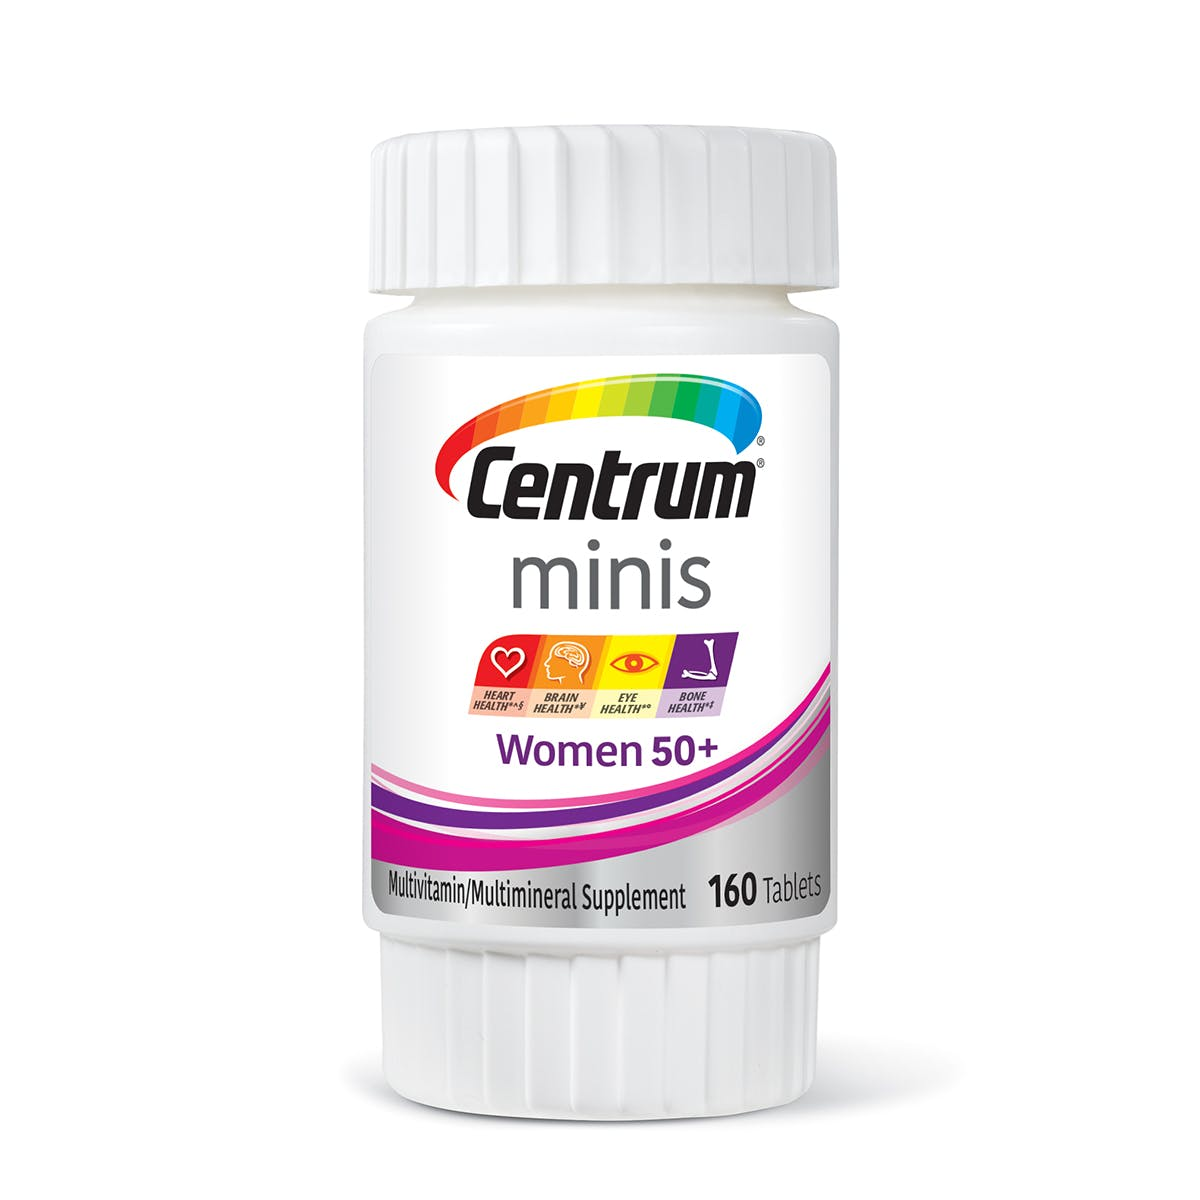 Bottle of Centrum Minis Women 50plus multivitamins